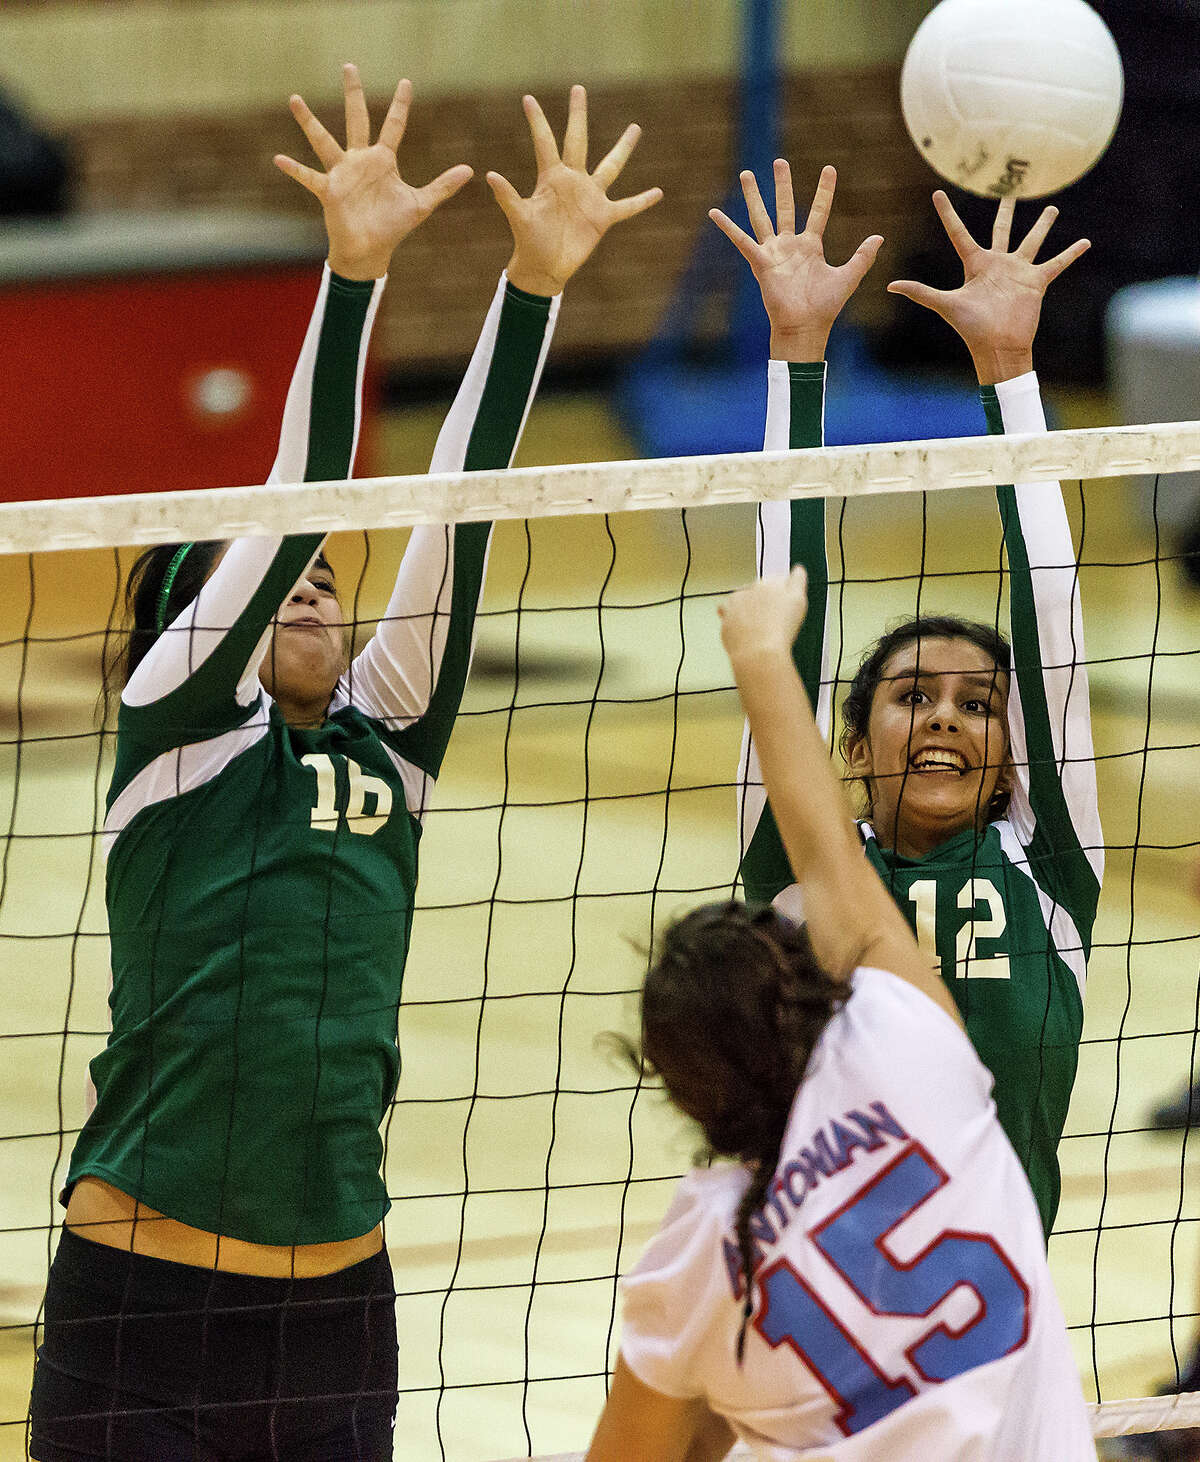 Incarnate Word's Theresa Reyna (left) and Ana Hurtado try to block a shot by Antonian's Haley Hall during their match at the McDermott Center on Oct. 10, 2012. Incarnate Word won the match 25-18, 25-15, 25-18. MARVIN PFEIFFER/ mpfeiffer@express-news.net